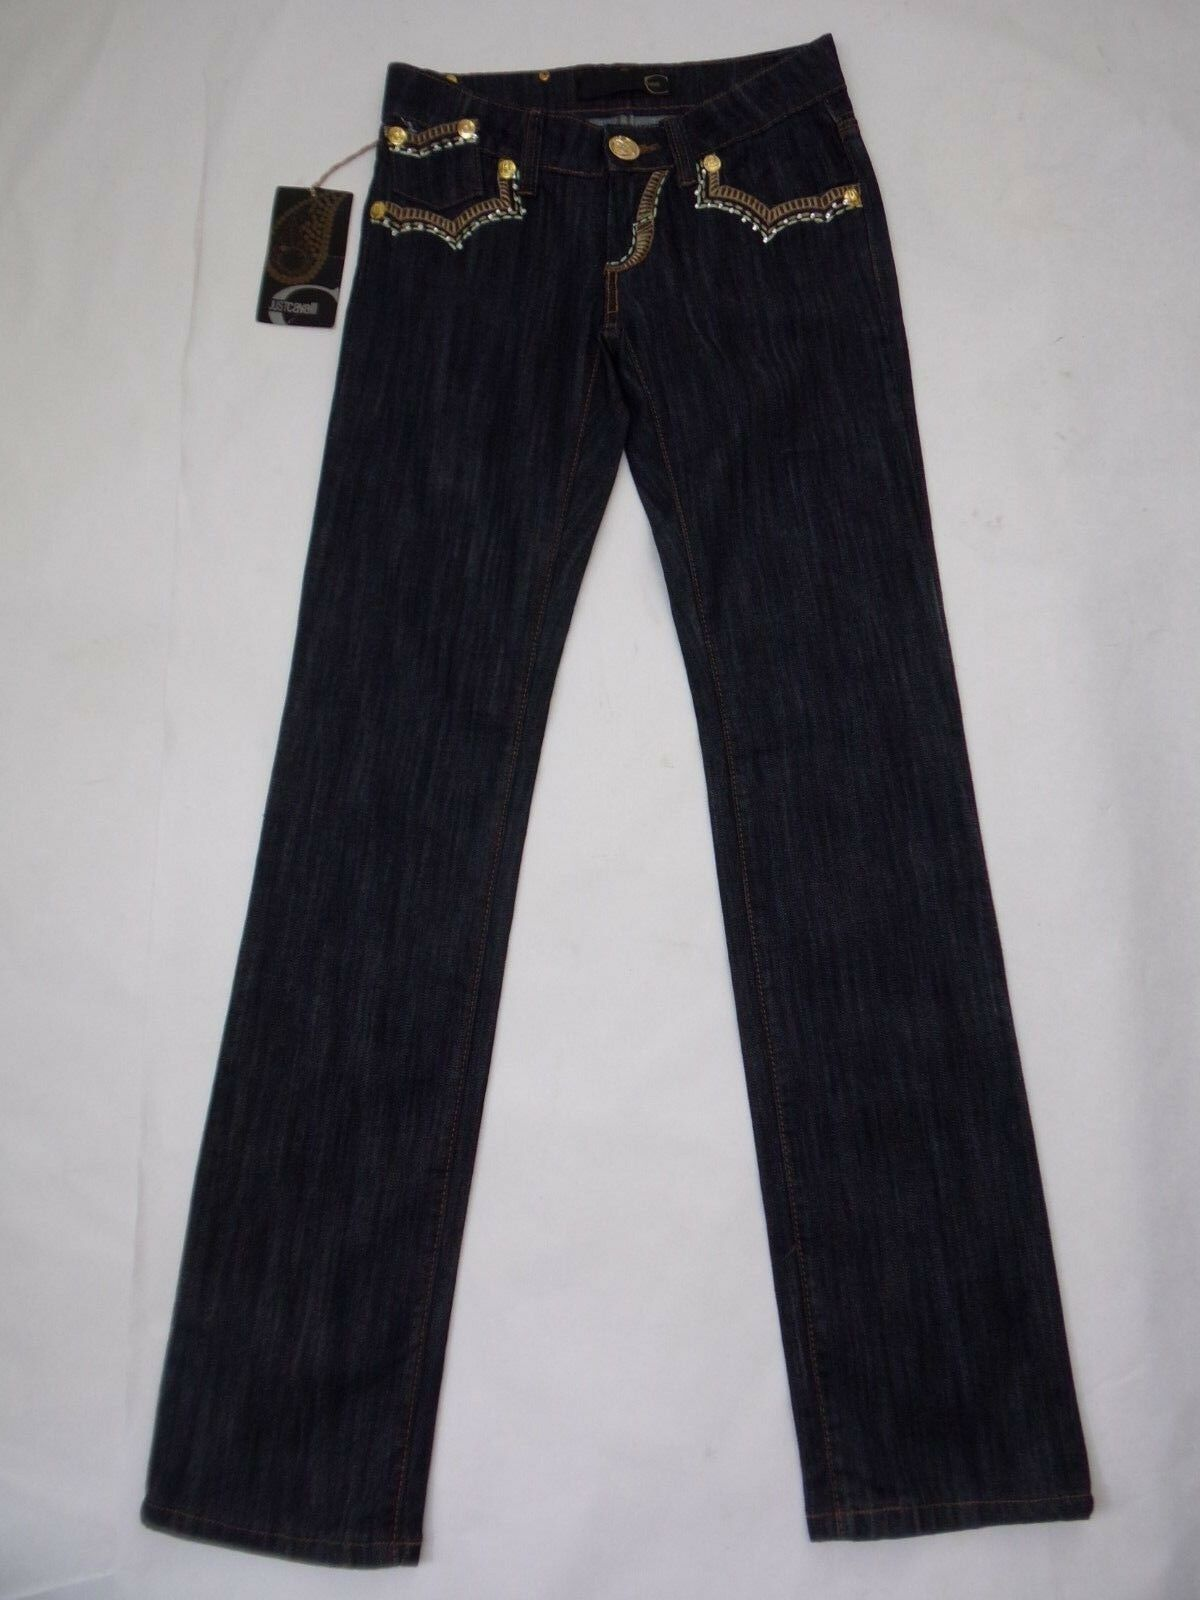 380 NWT JUST CAVALLI Denim Embellished Crystal Embroidery bluee Jeans 26 29 x 34